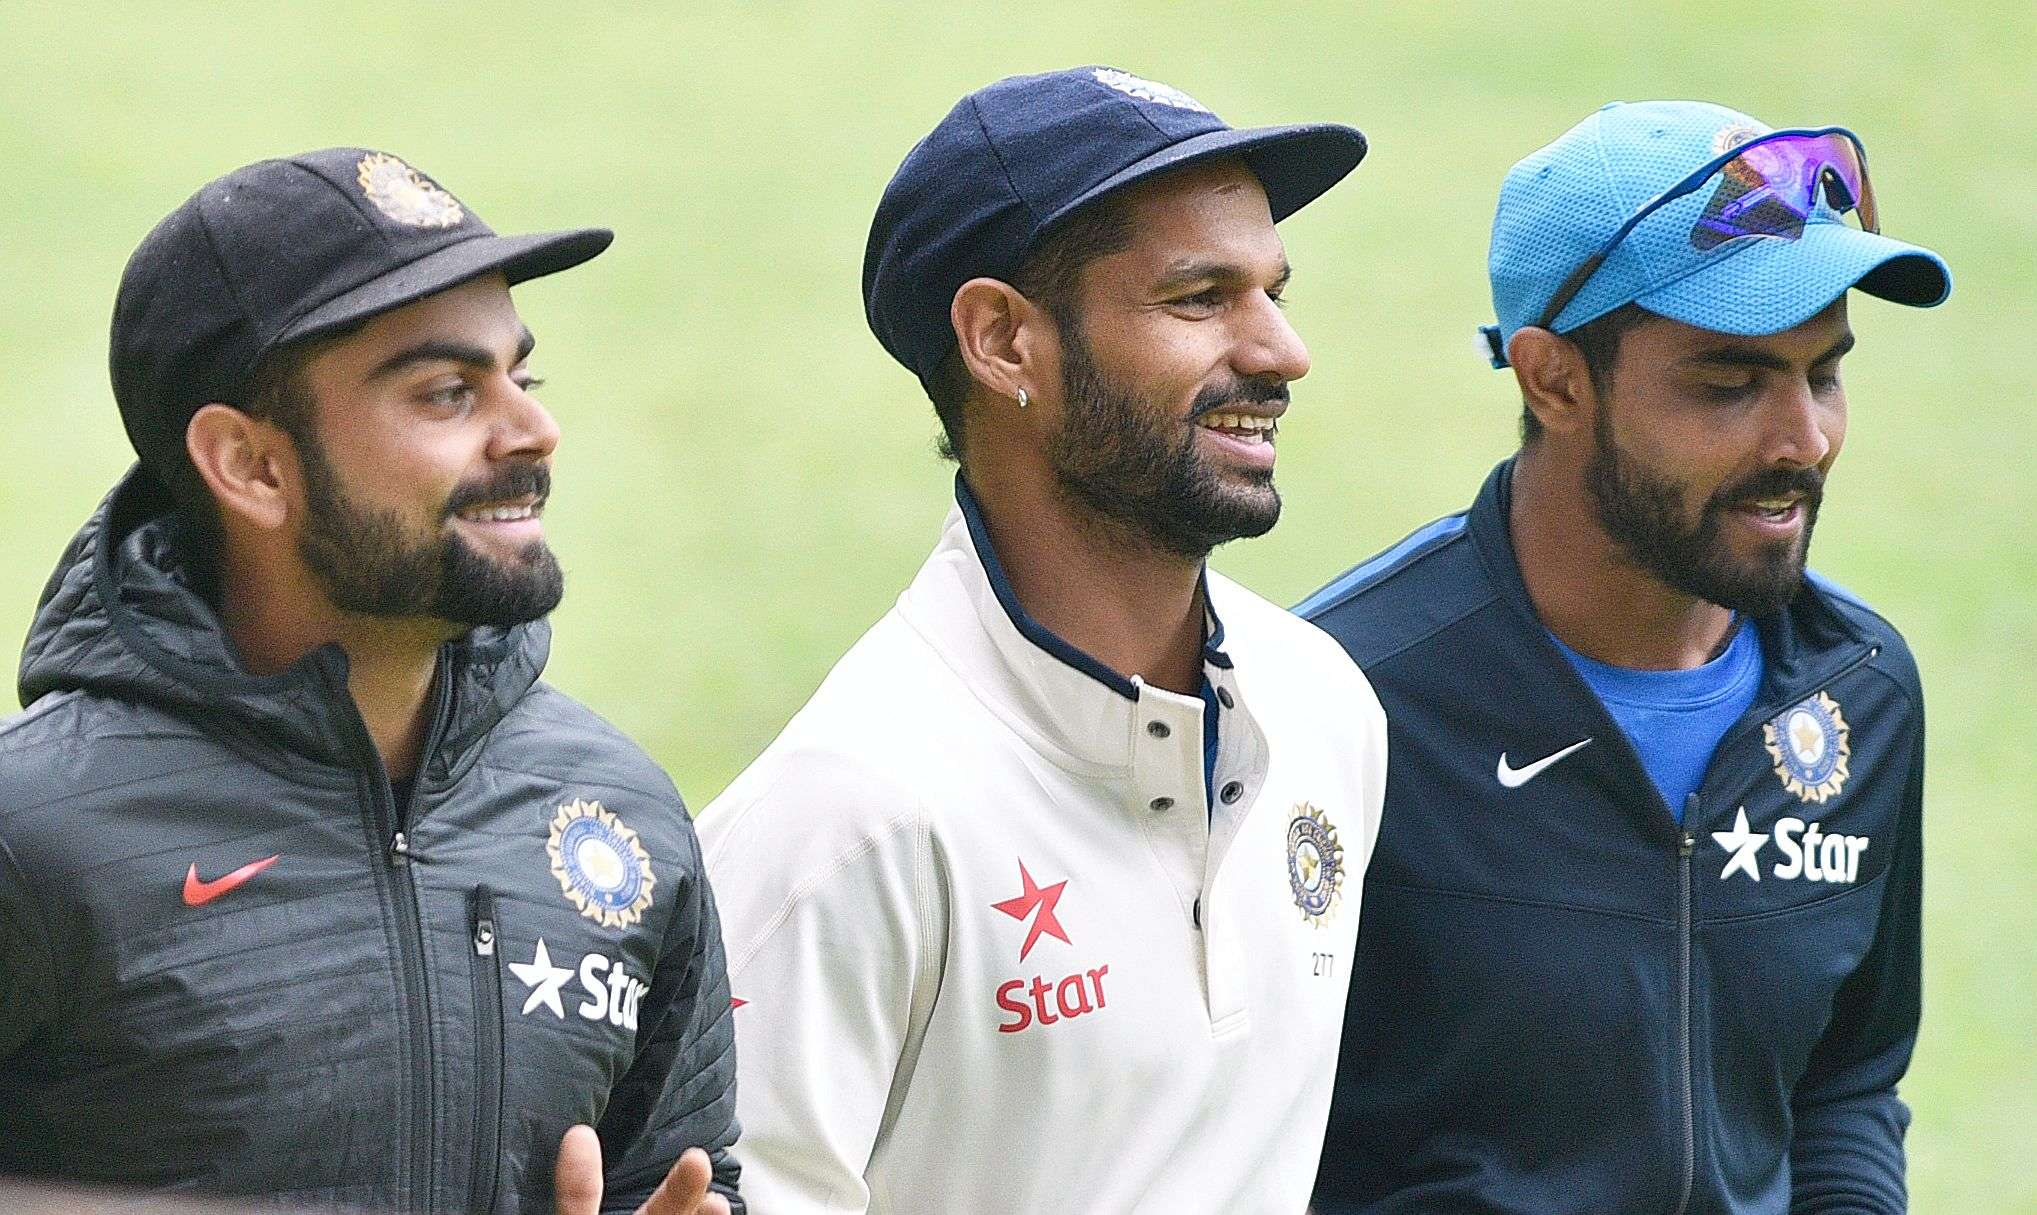 Indian cricket team captain Virat Kohli , Shikhar Dhawan and Ravindra Jadeja during practice session , prior to the second India-South Africa cricket test to be held in city at M Chinnaswamy stadium, in Bengaluru on Friday.